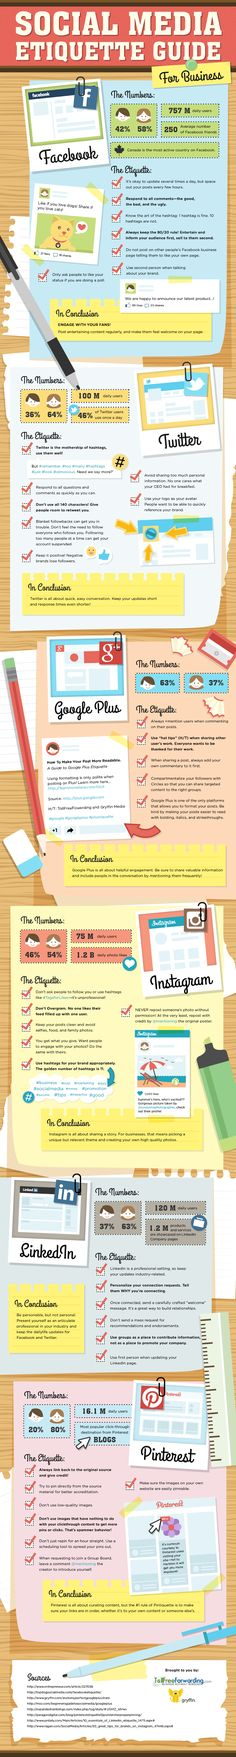 The Social Media Etiquette Guide for Business [infographic]